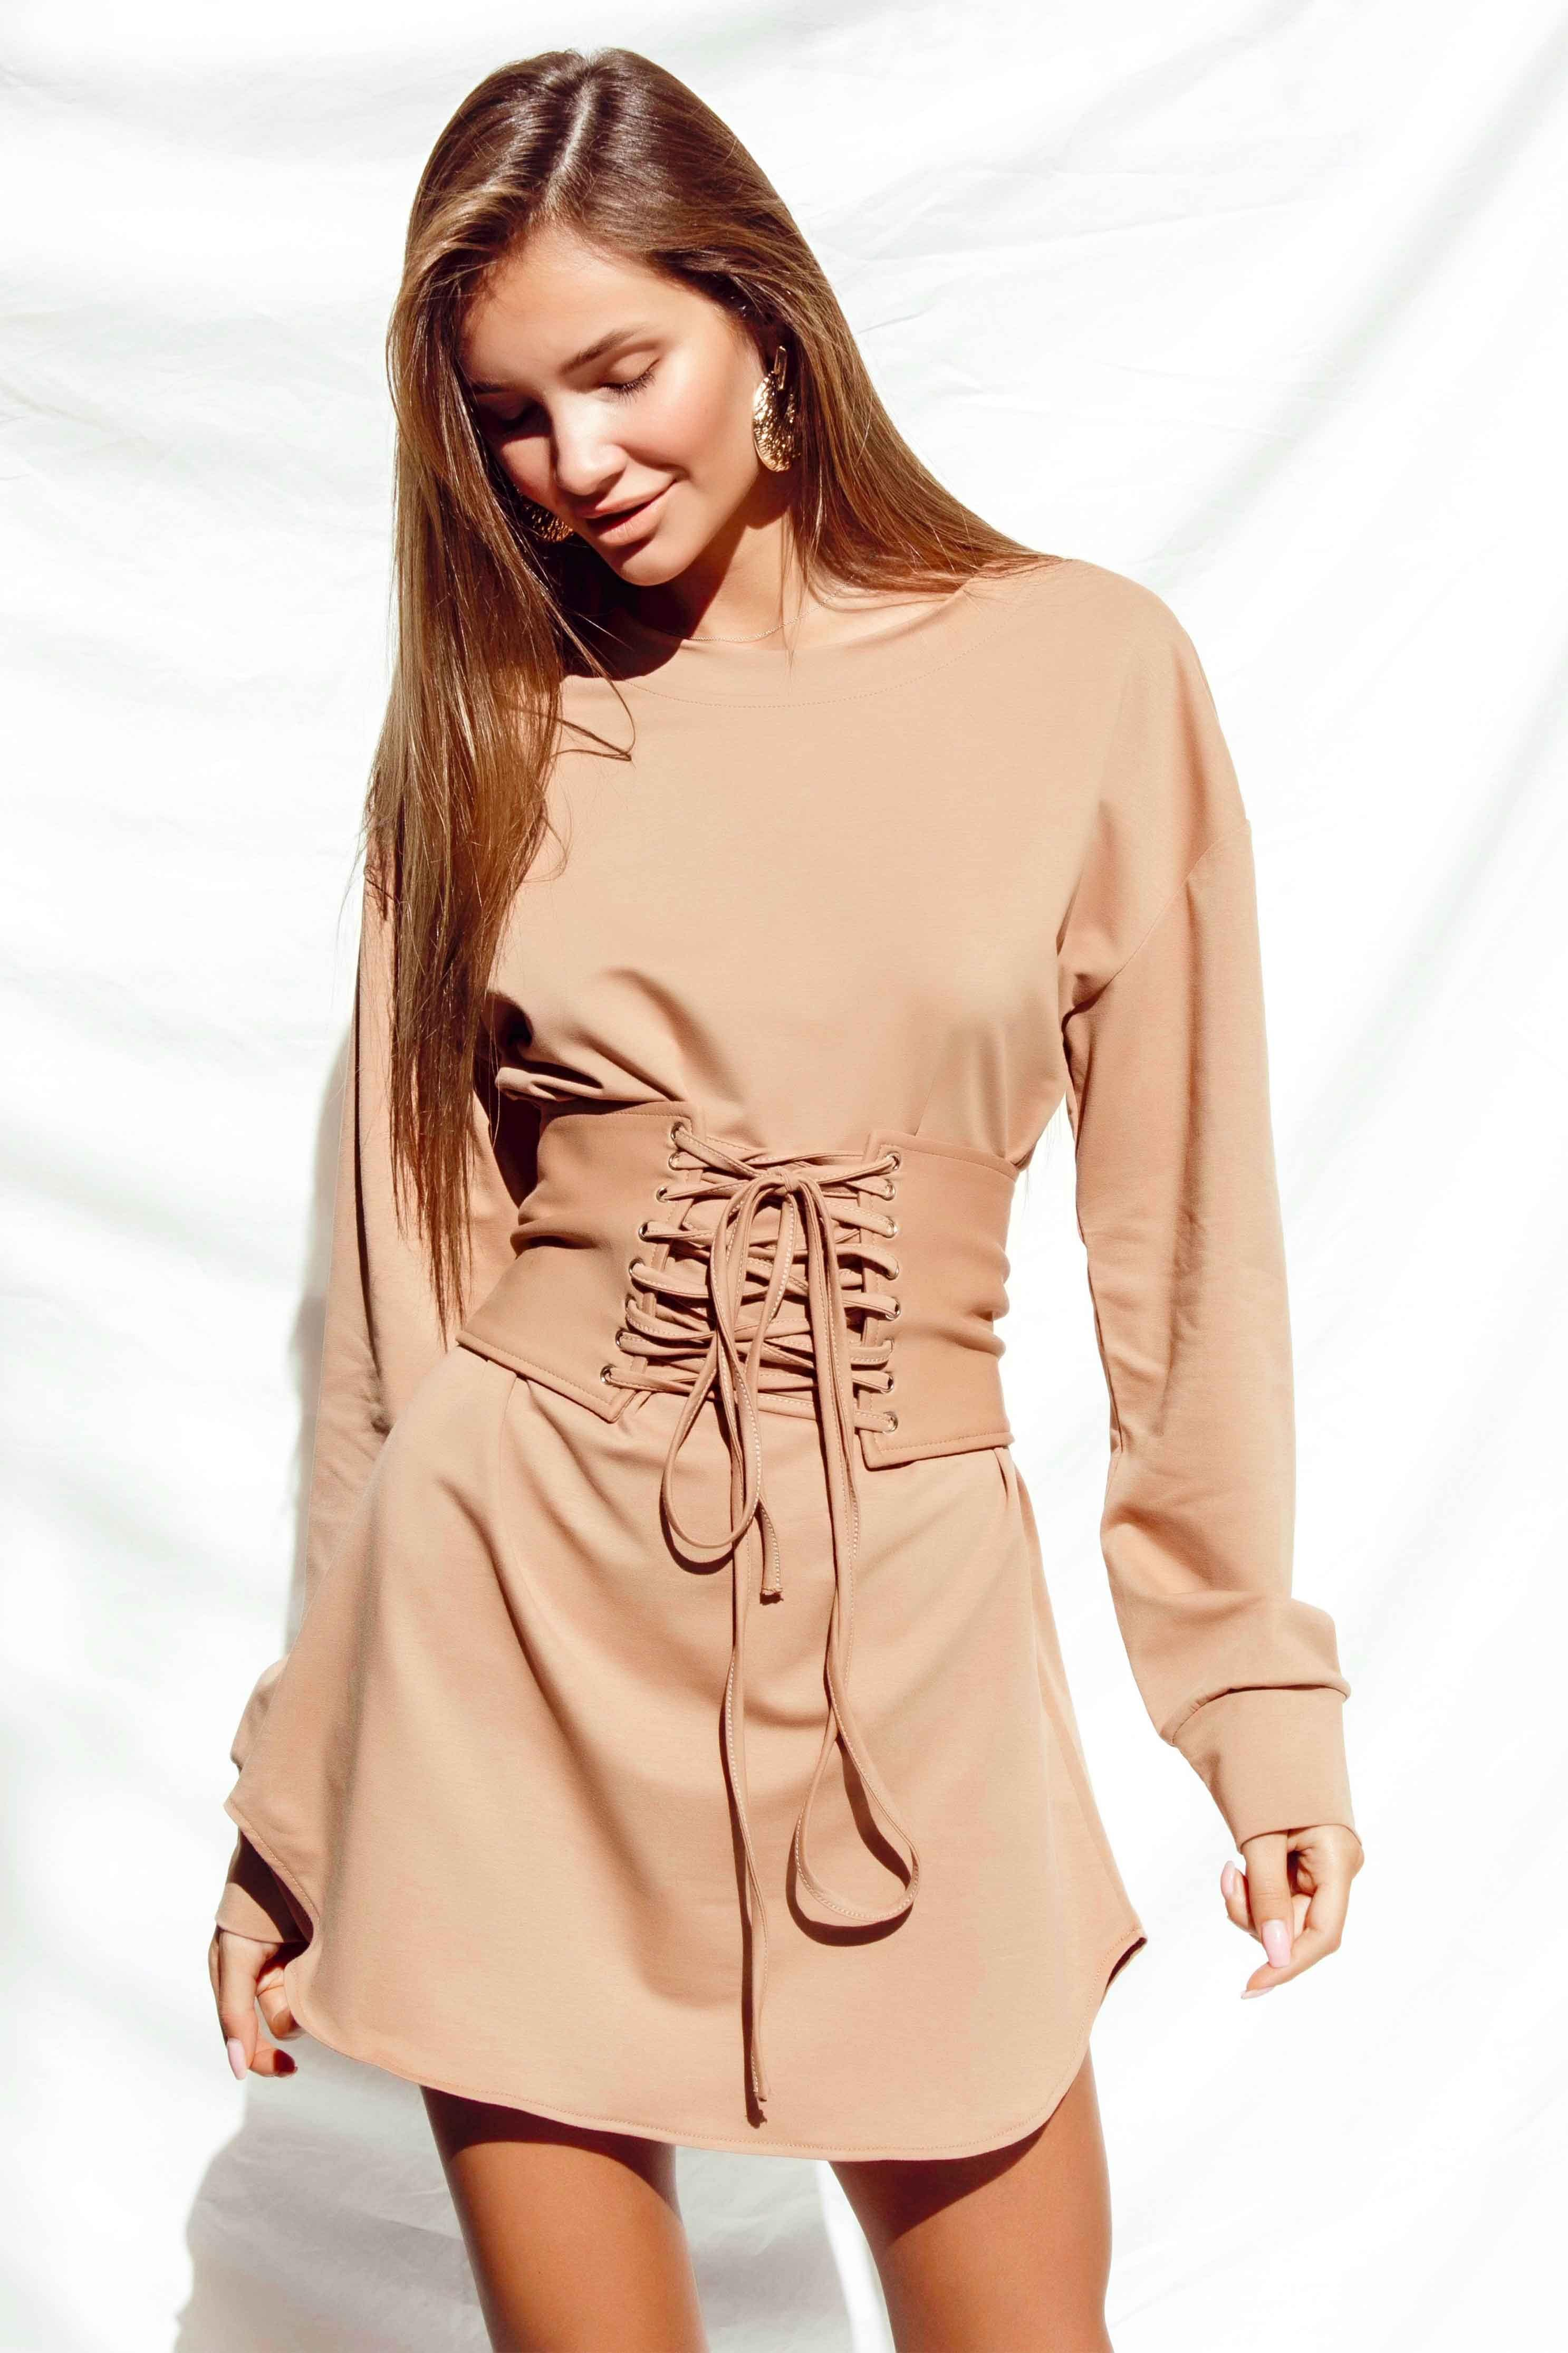 MARNA DRESS | Women's Online Shopping | CHICLEFRIQUE